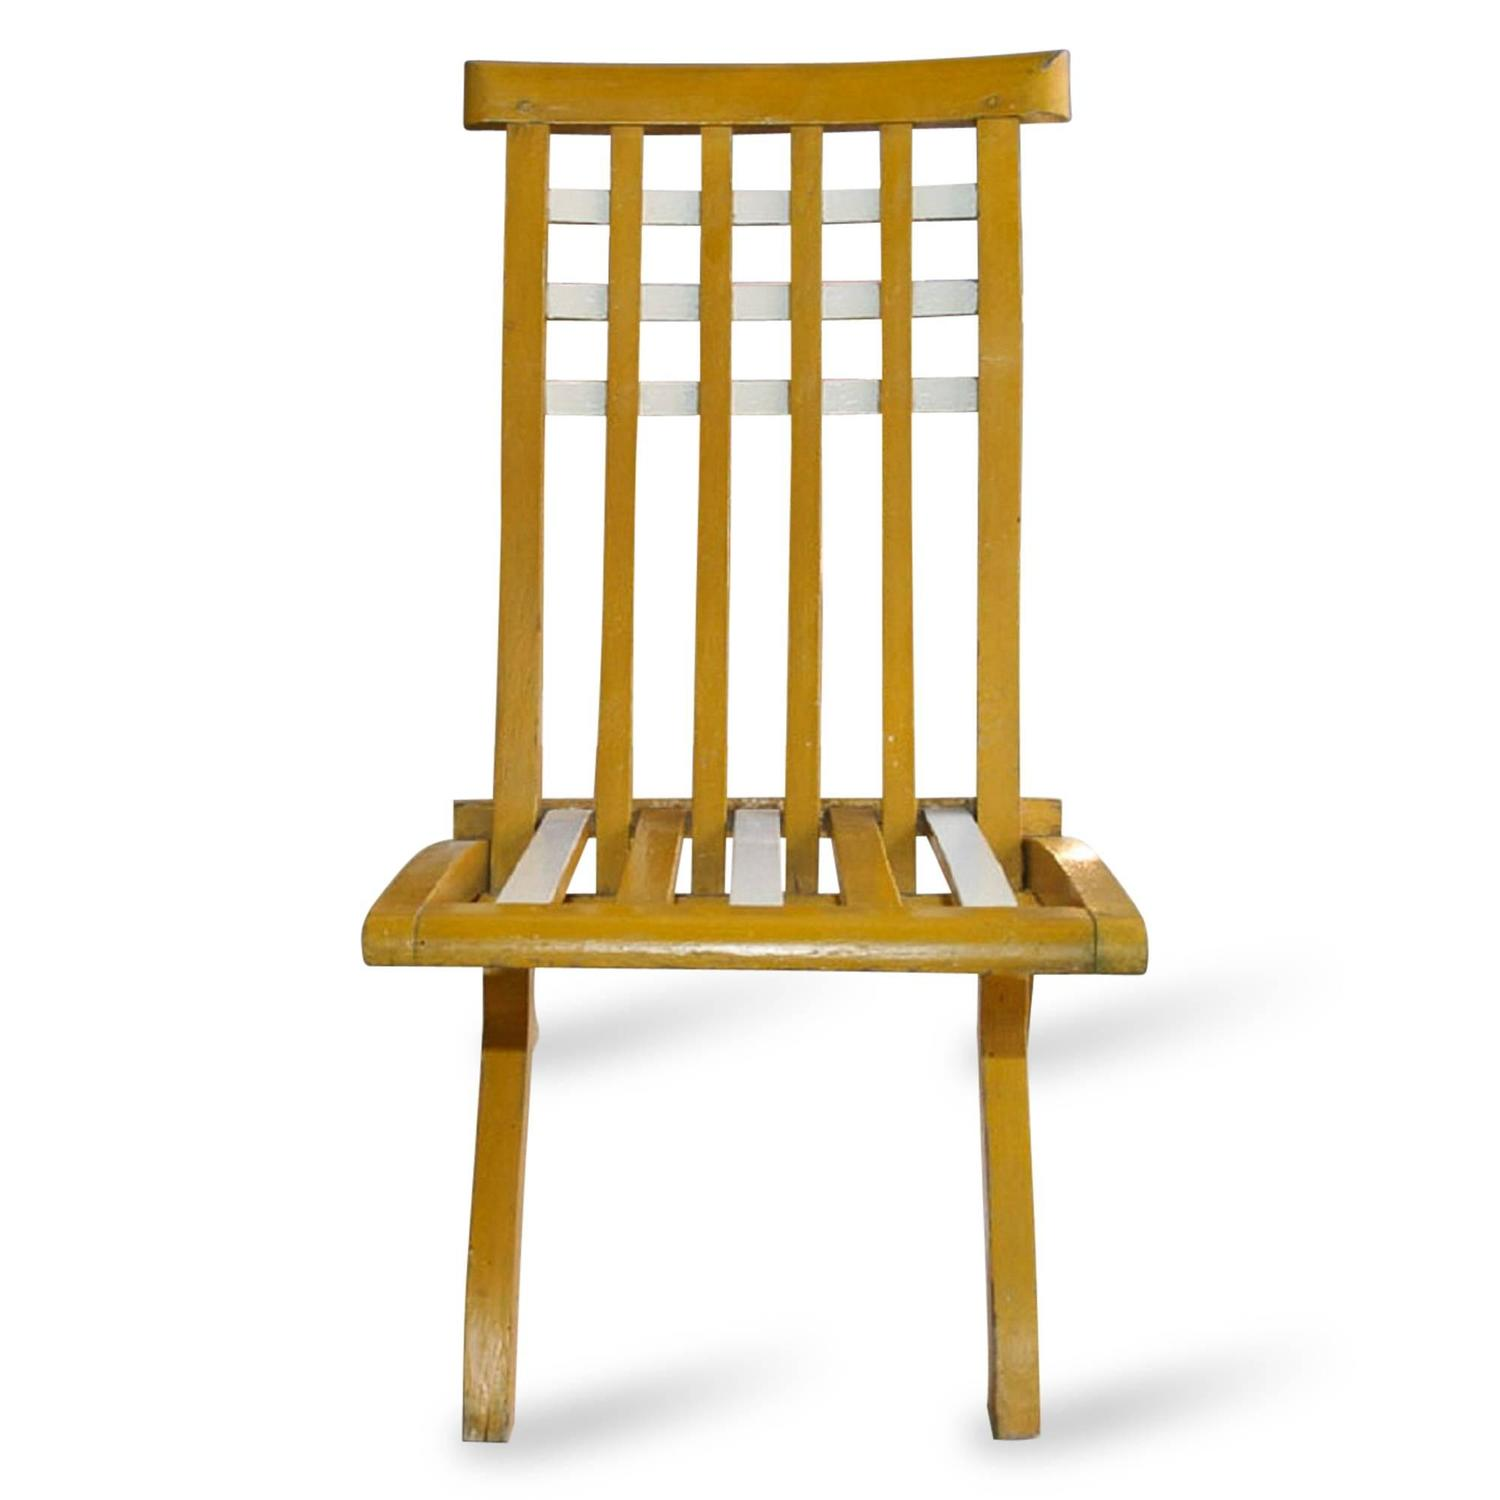 Set of French 1920s Wooden Folding Chairs For Sale at 1stdibs